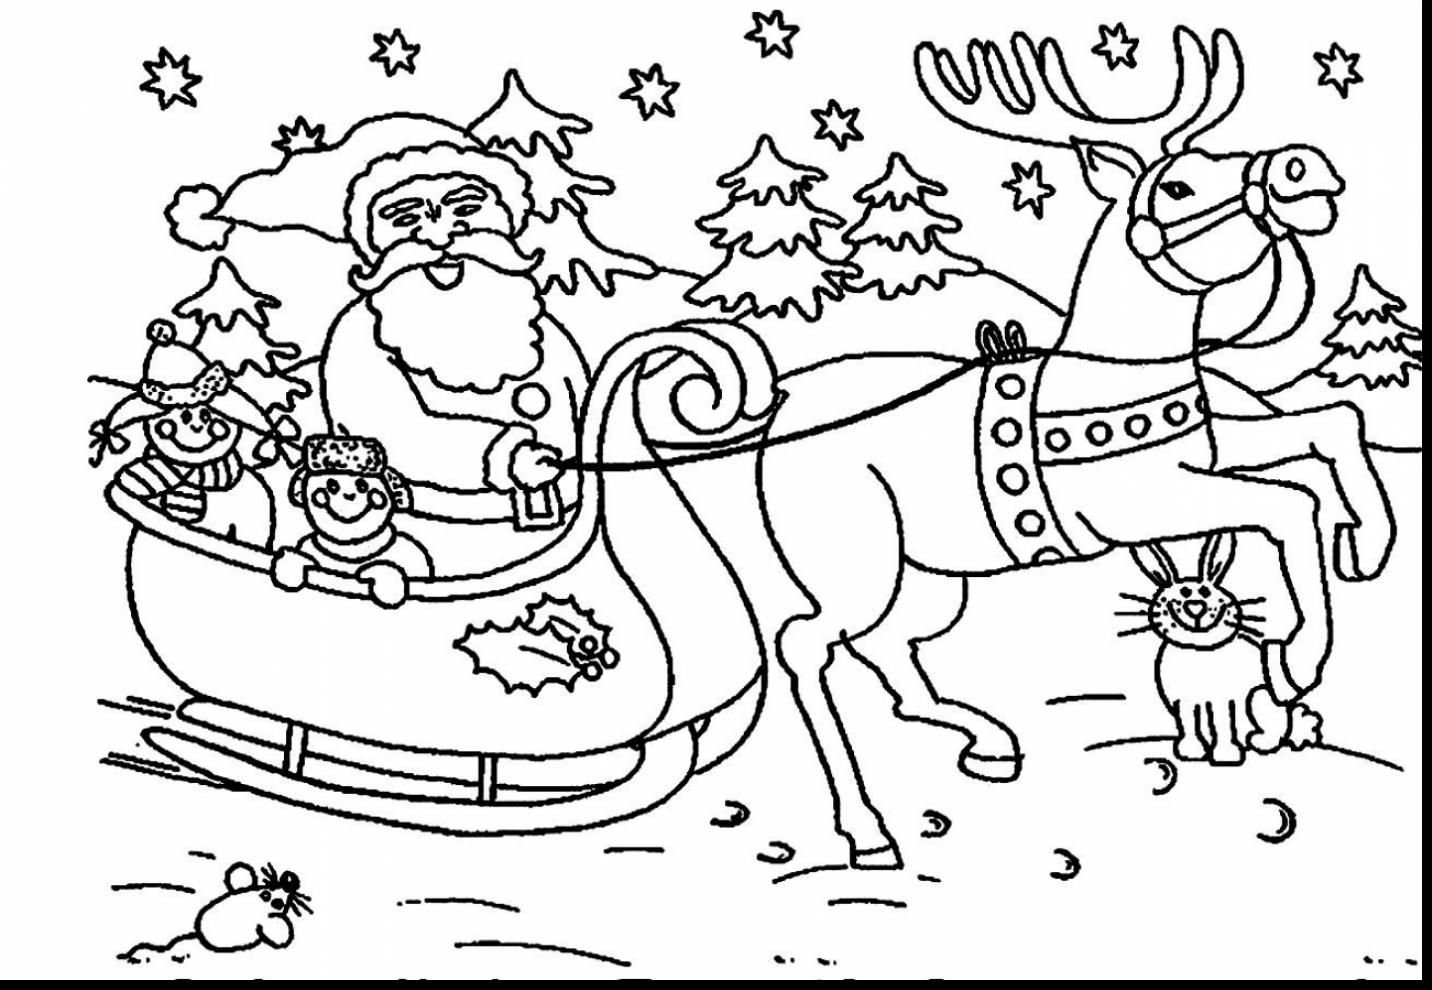 Santa Claus And Christmas Tree Coloring Pages With Extraordinary Sleigh Reindeer